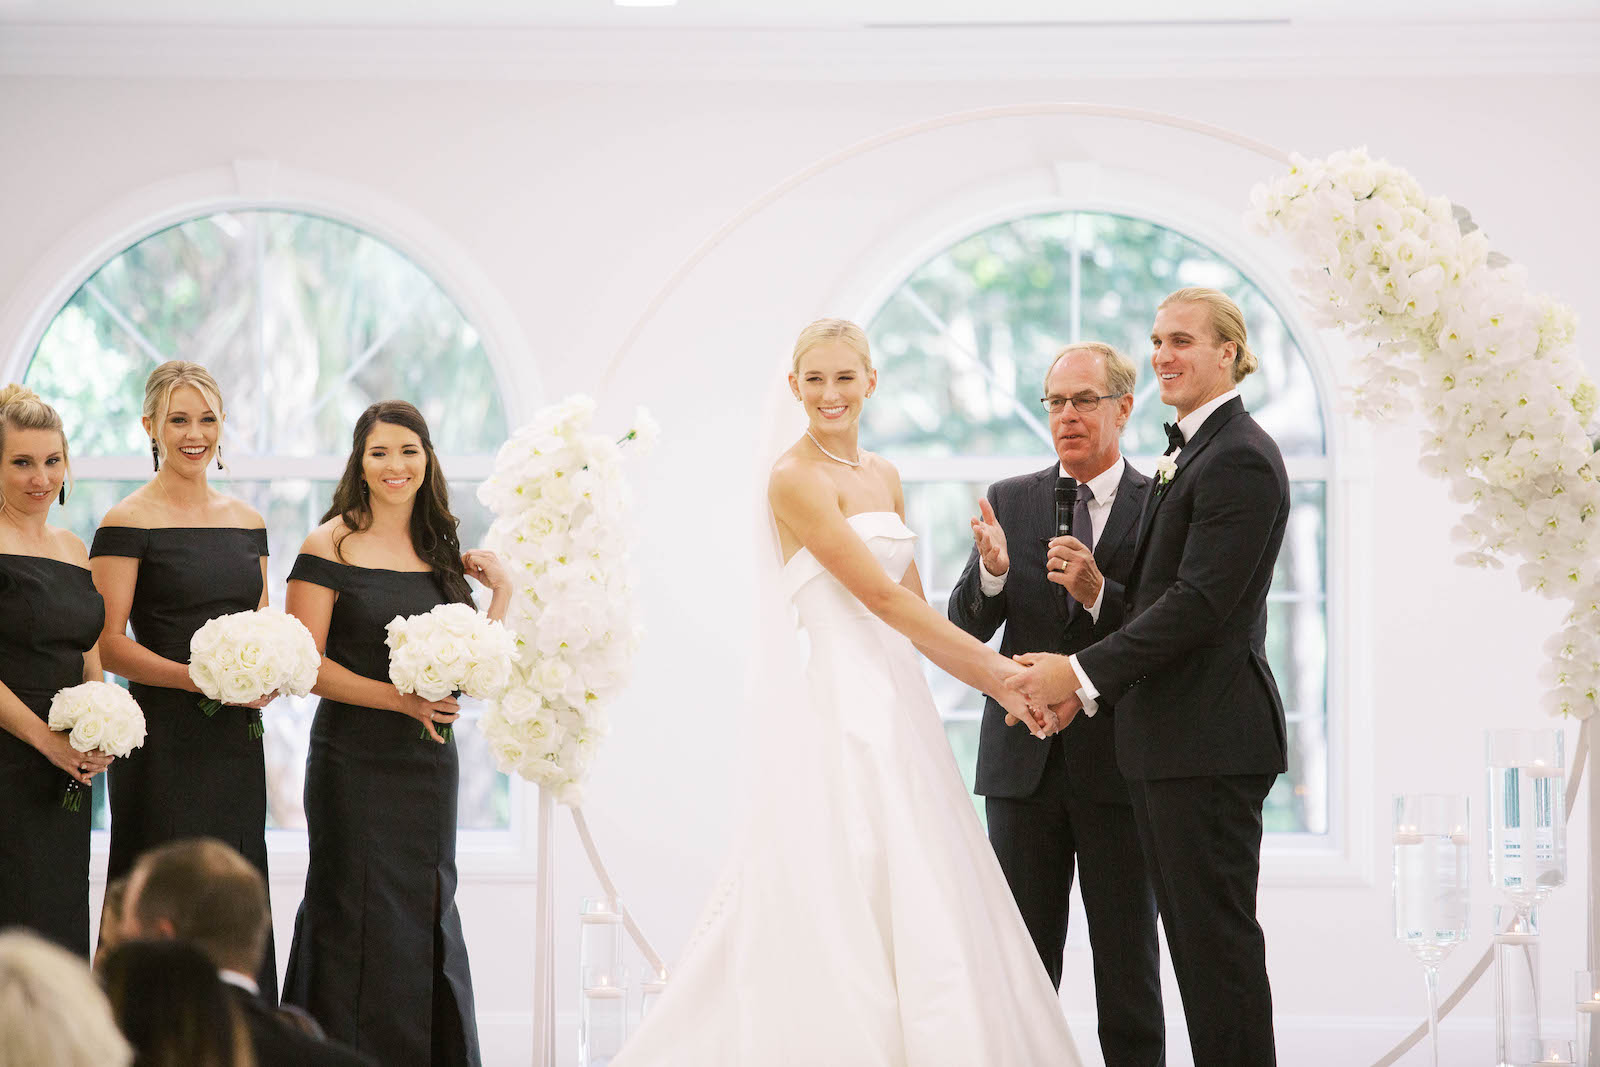 Classic Traditional Bride and Groom Exchanging Wedding Ceremony Vows, Circular Arch with White Orchid Arrangements, Bridesmaids in Black Off the Shoulder Matching Dresses Holding White Floral Bouquets | Tampa Bay Wedding Planner Parties A'la Carte | Safety Harbor Church Wedding Venue Harborside Chapel